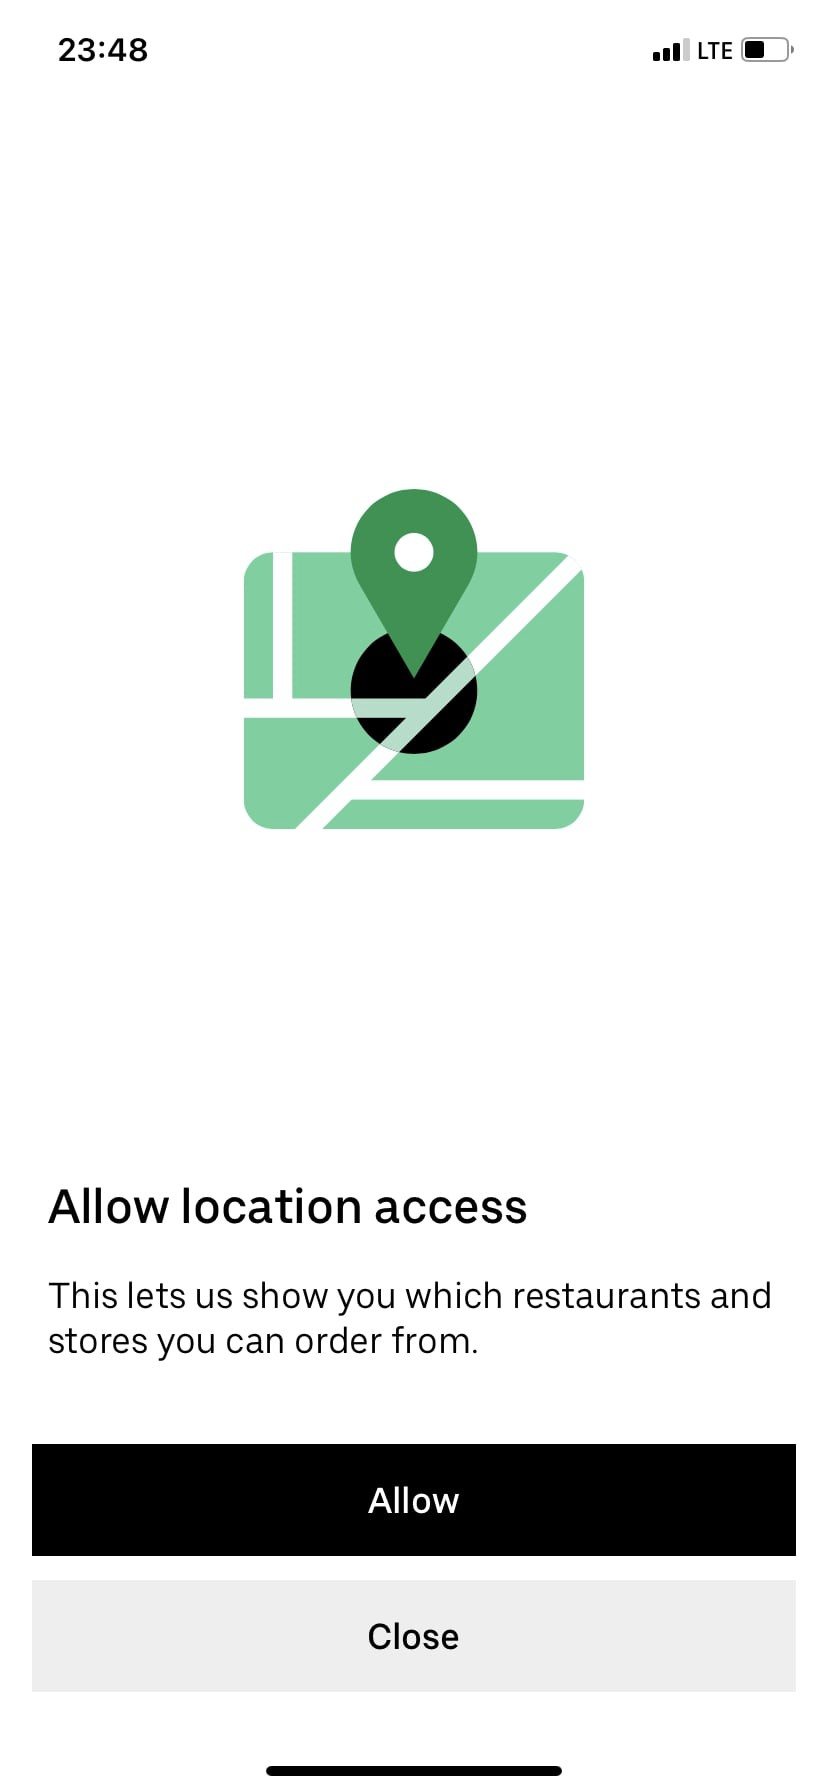 Allow location access